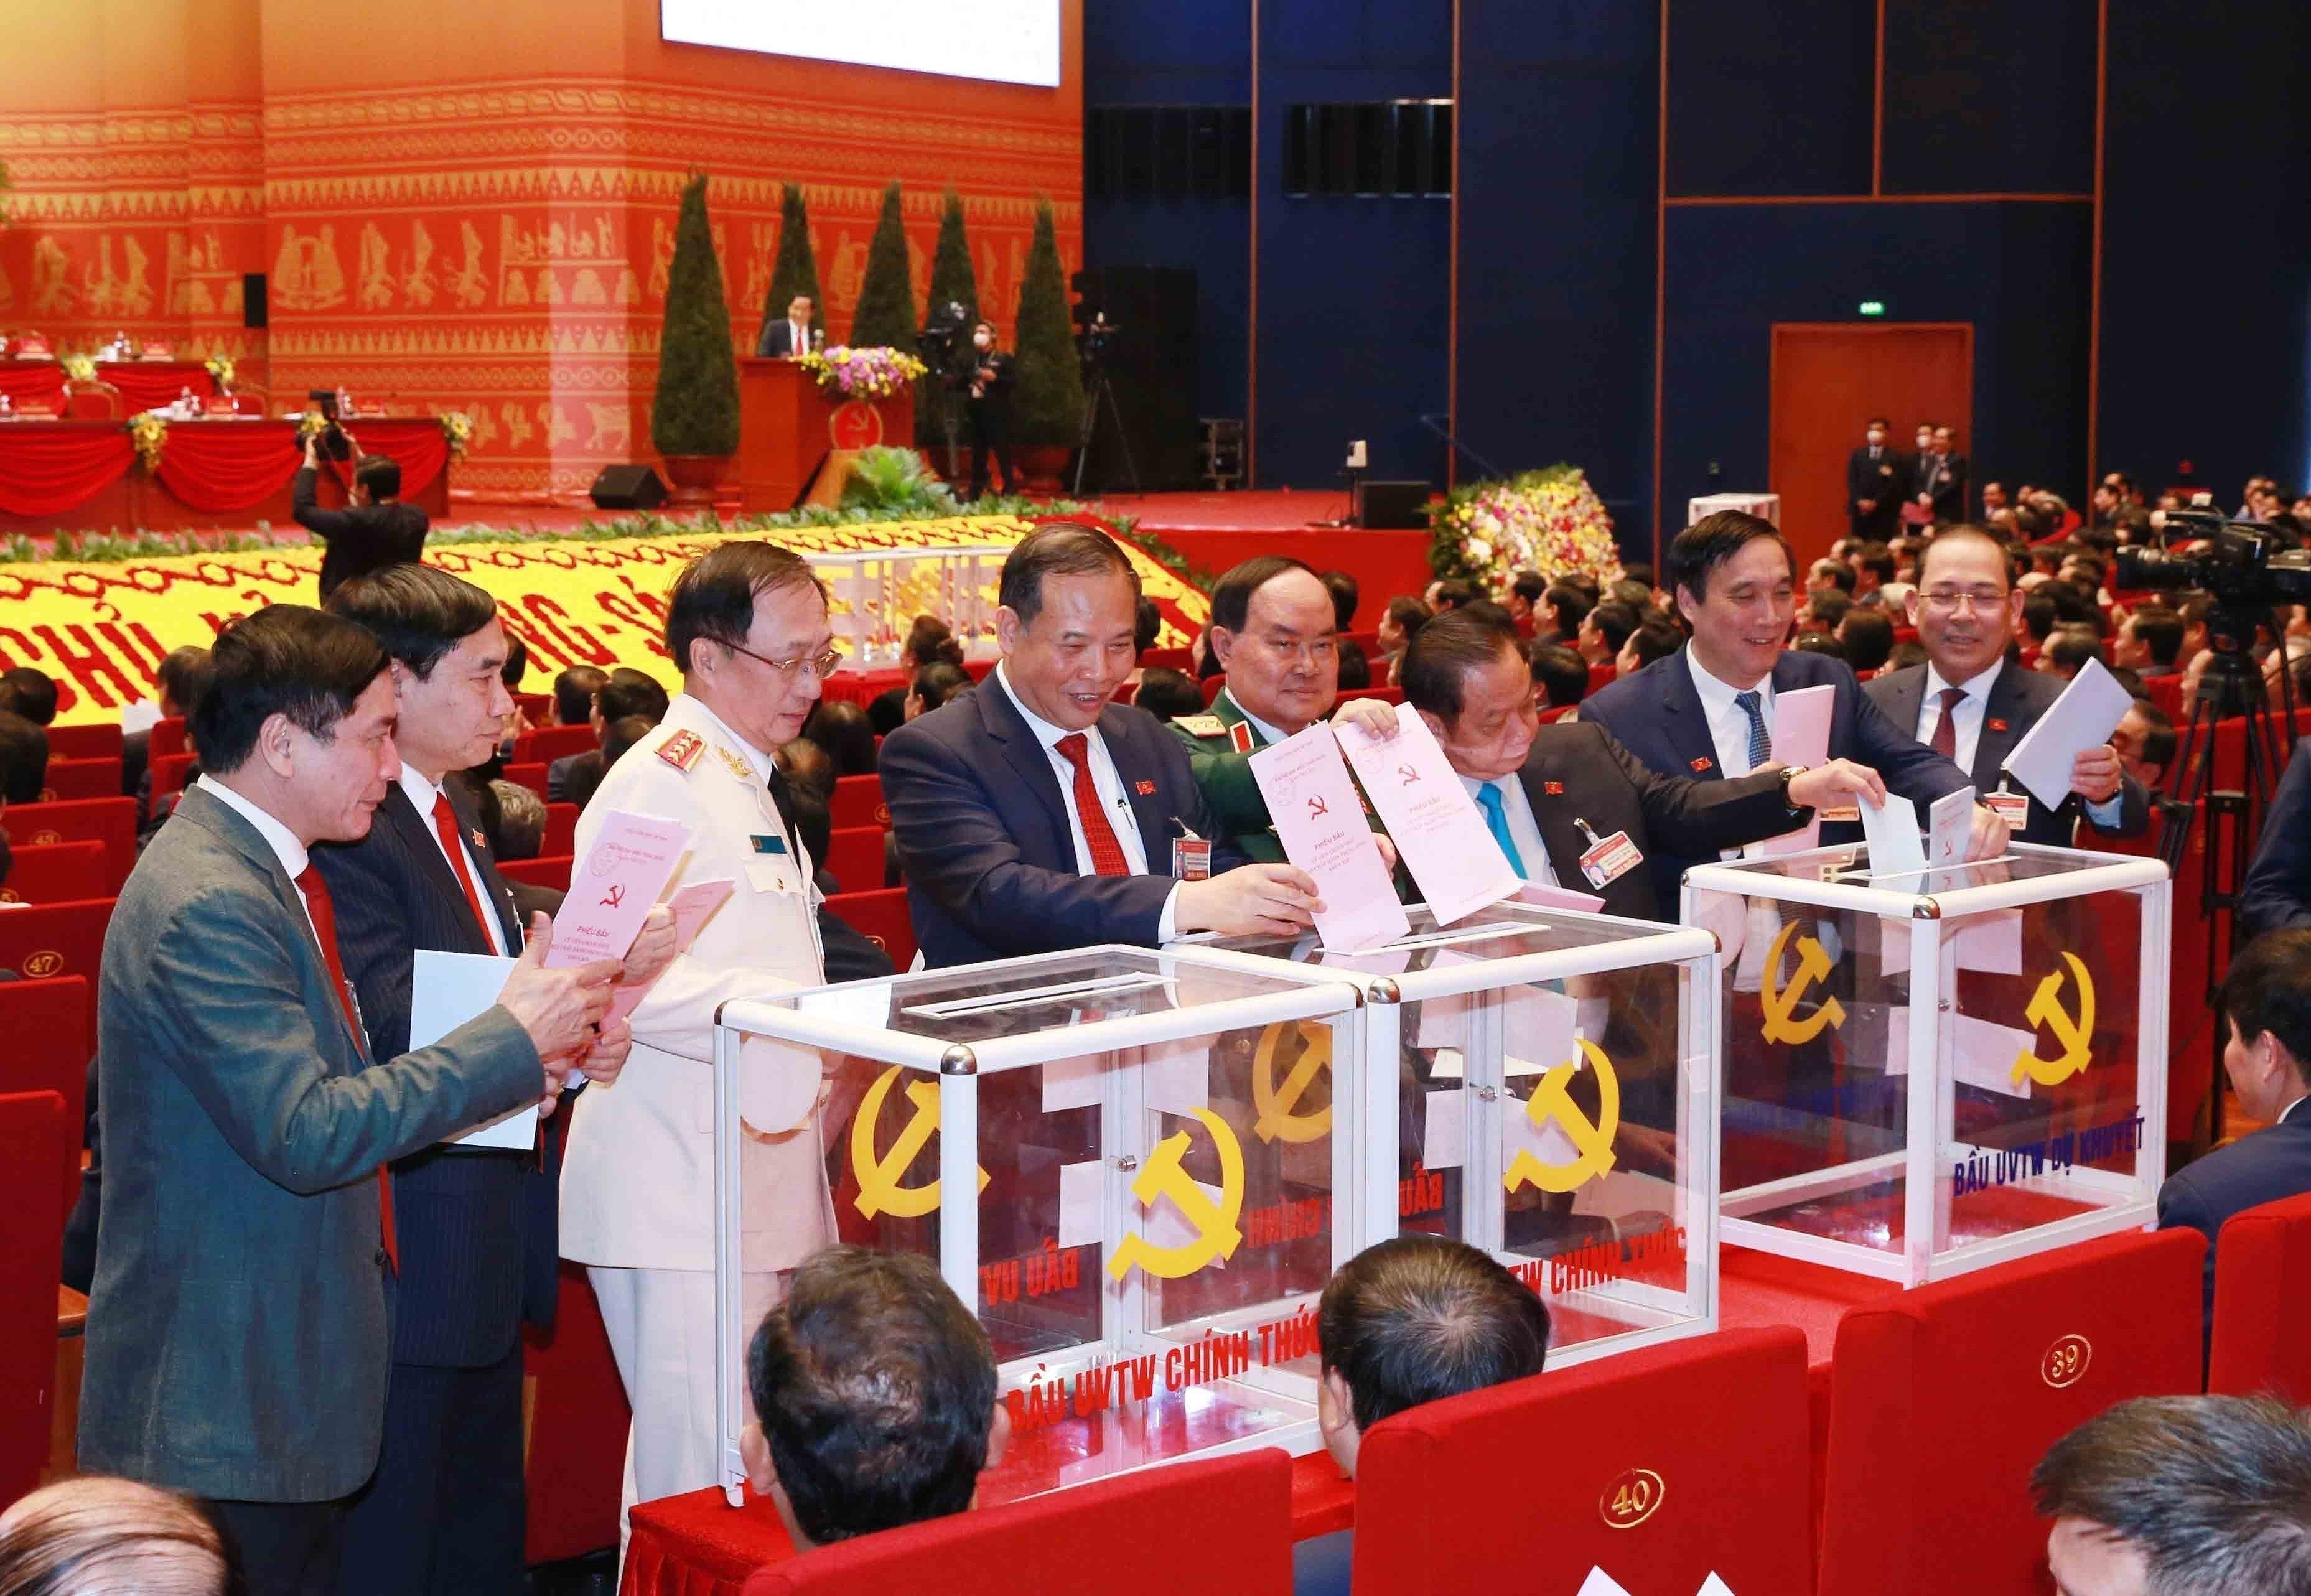 Congress conducts voting on 13th tenure Party Central Committee members hinh anh 2